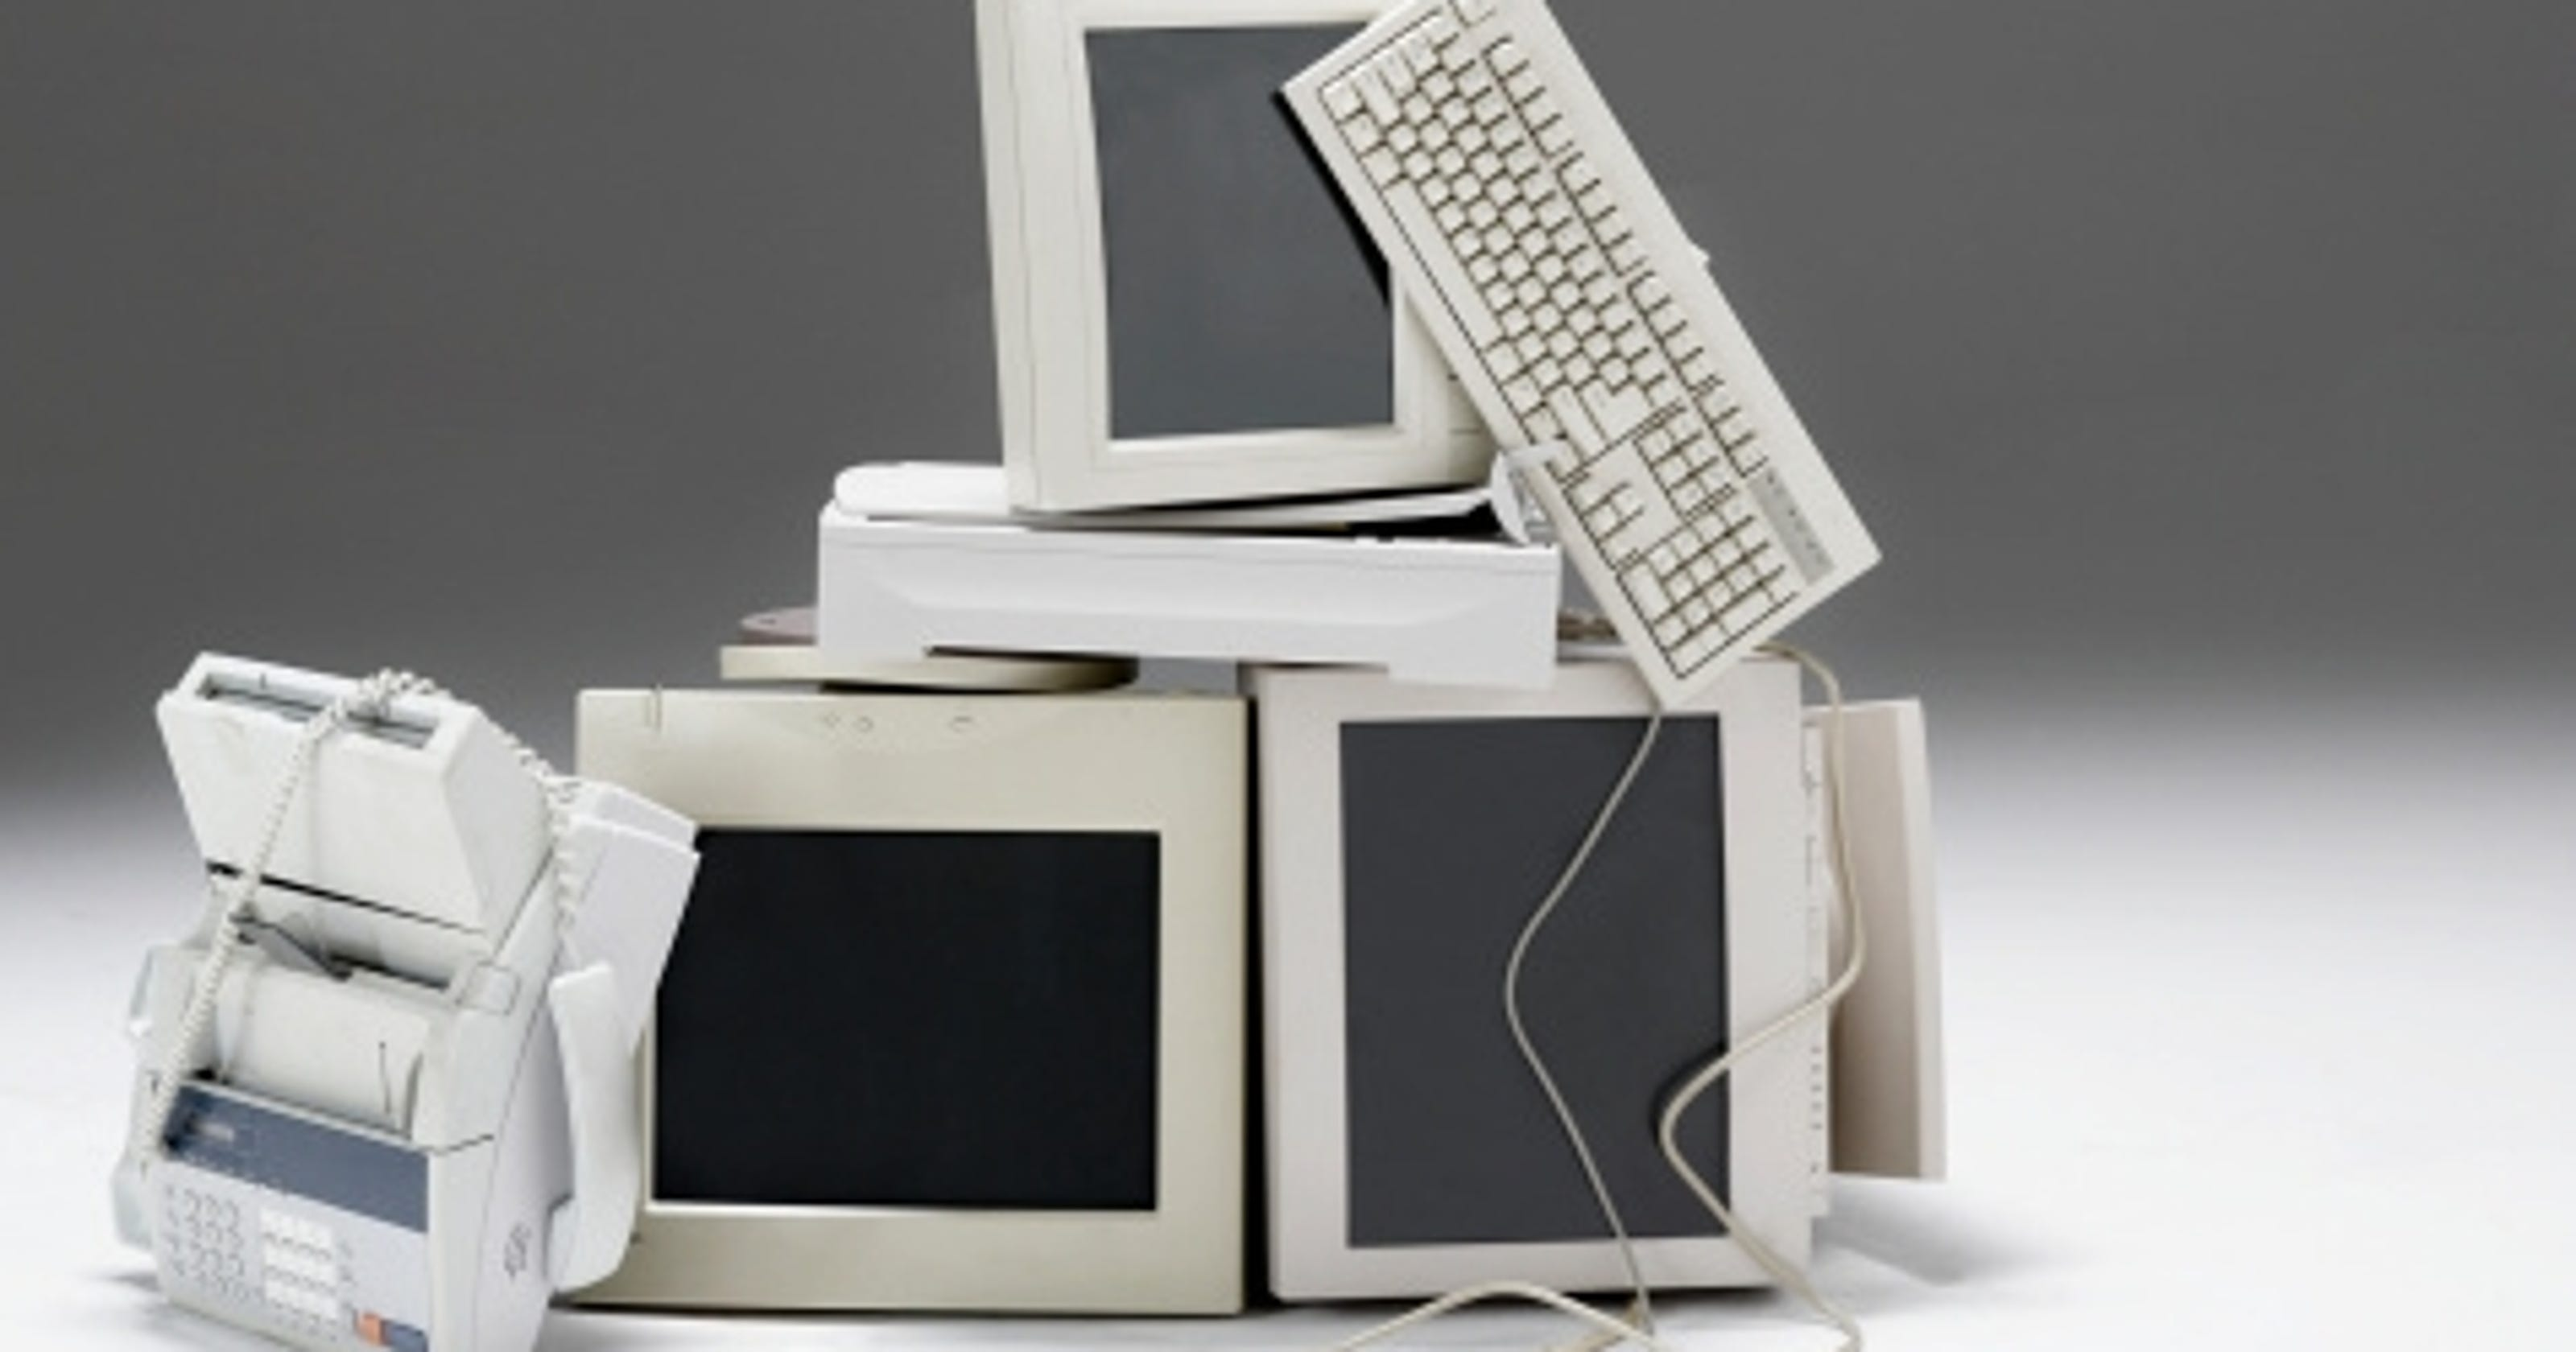 6 ways to speed an old computer